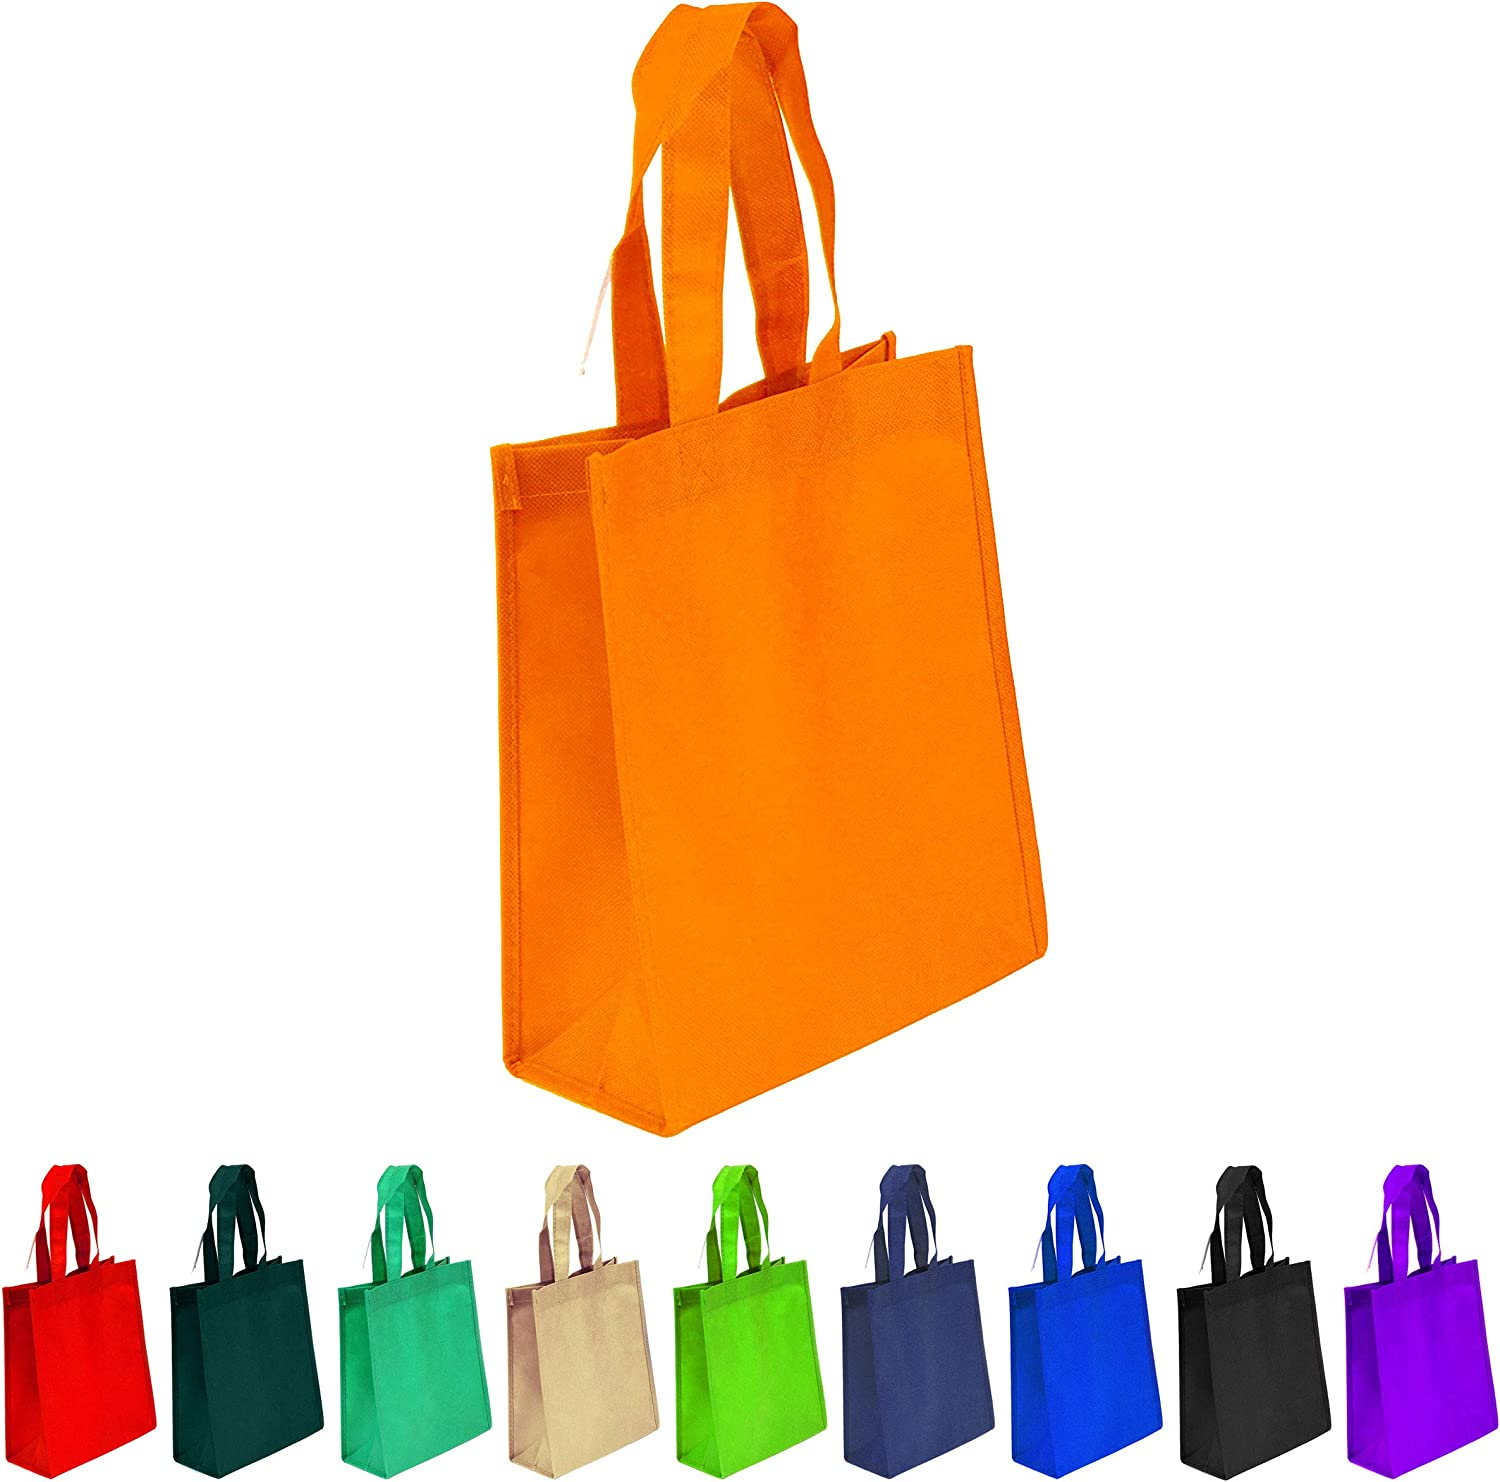 small cloth bags with handles